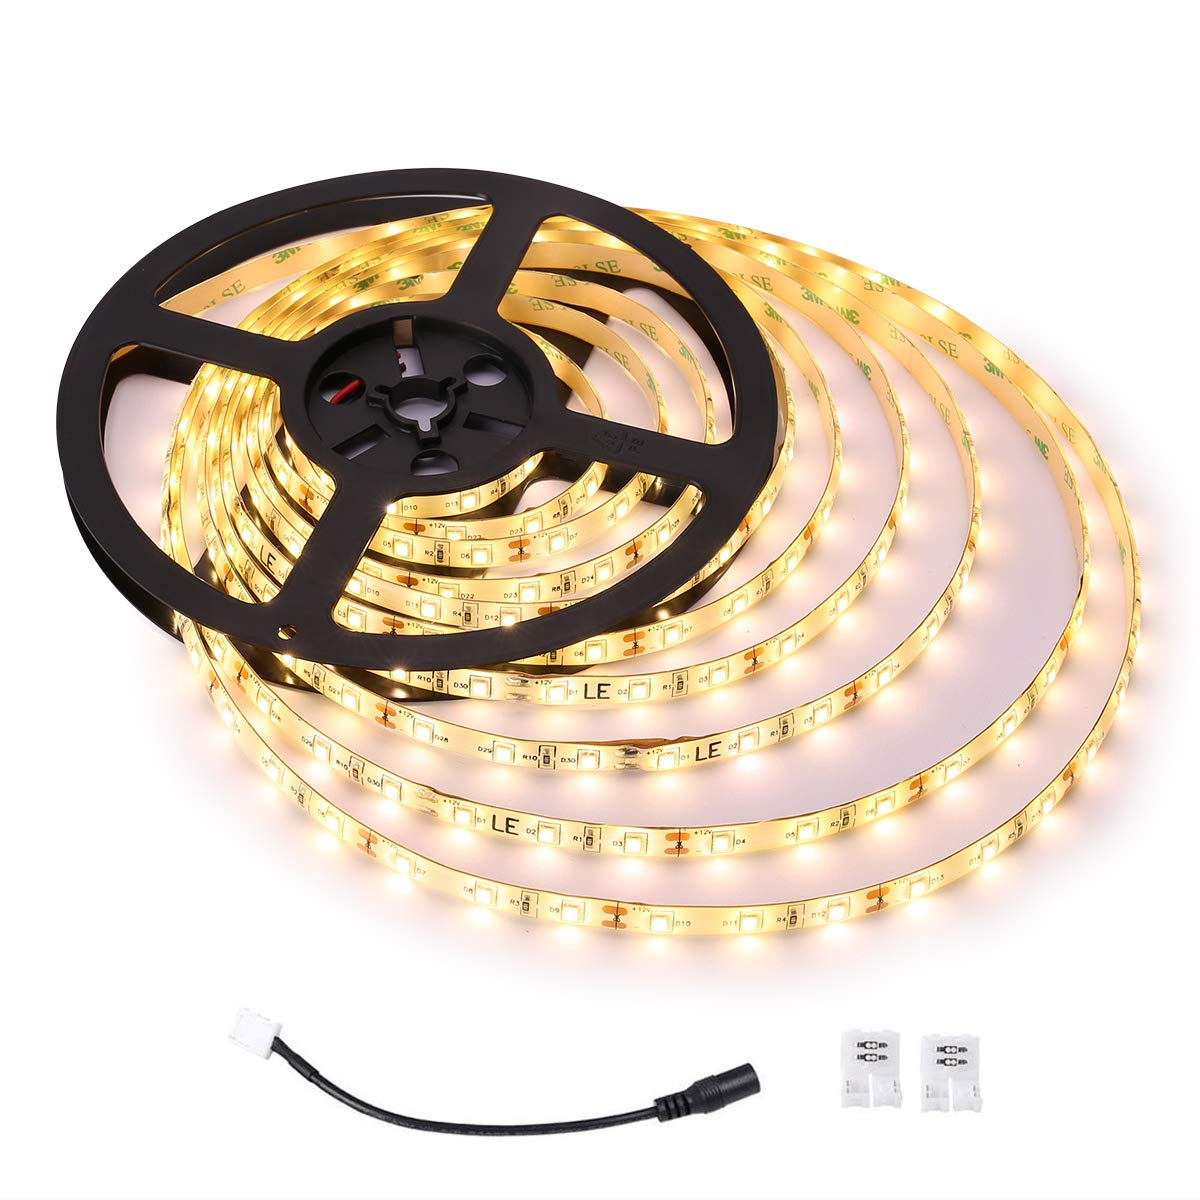 Le Waterproof Led Strip Lights 300 Units 2835 Leds 12v Warm White Ledstrip Rgb Controller With Ir Remote Dirirxrgb Us Tape 1200 Lumens Outdoor Light Strips Pack Of 5 Meter Lighting